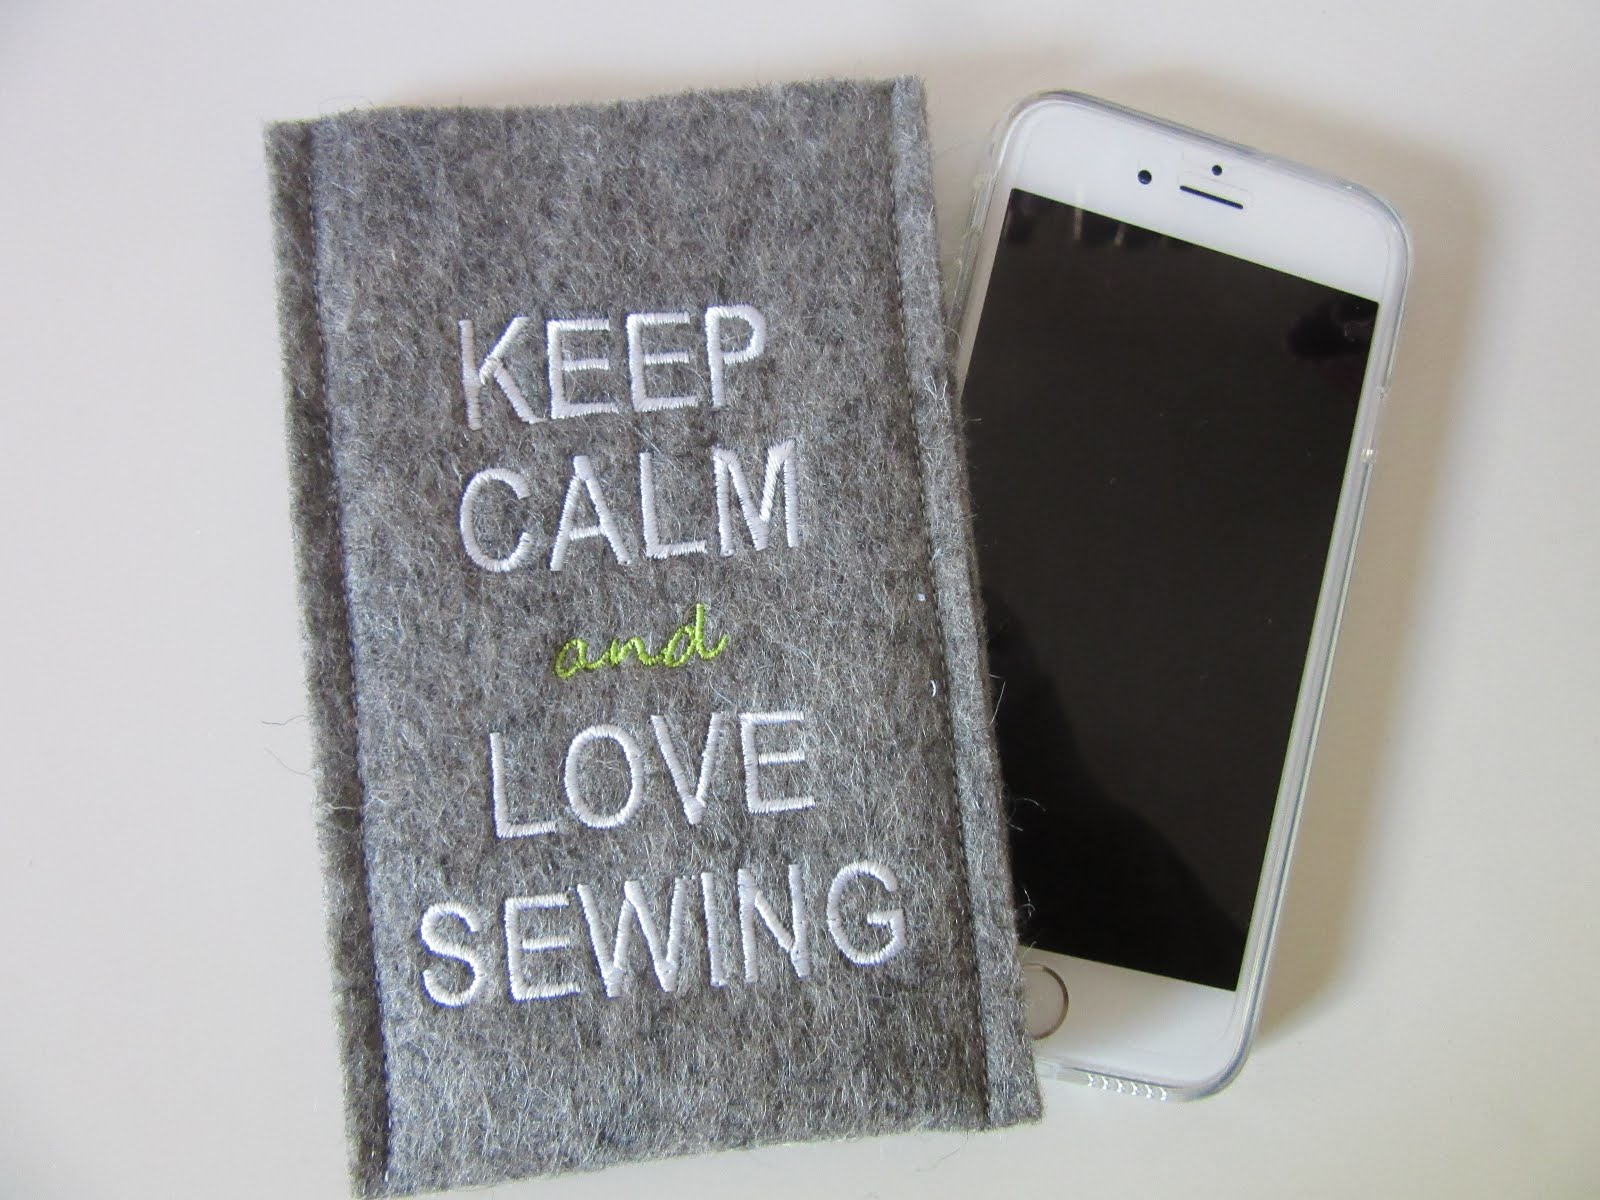 KEEP CALM & LOVE SEWING